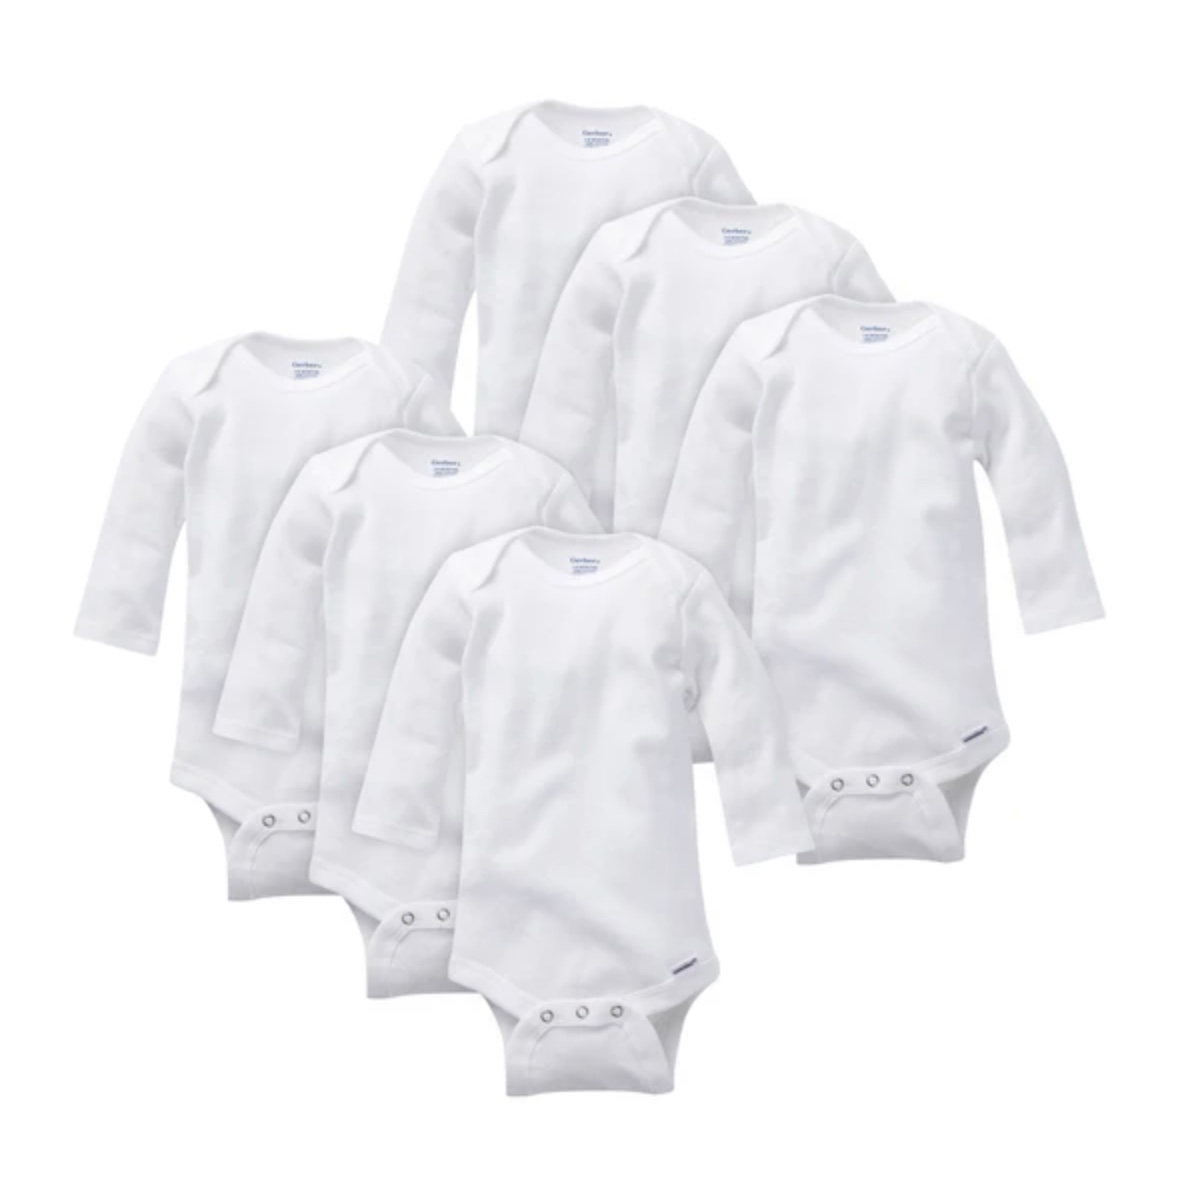 baby clothes: check out these top-selling items from gerber's childrenswear line